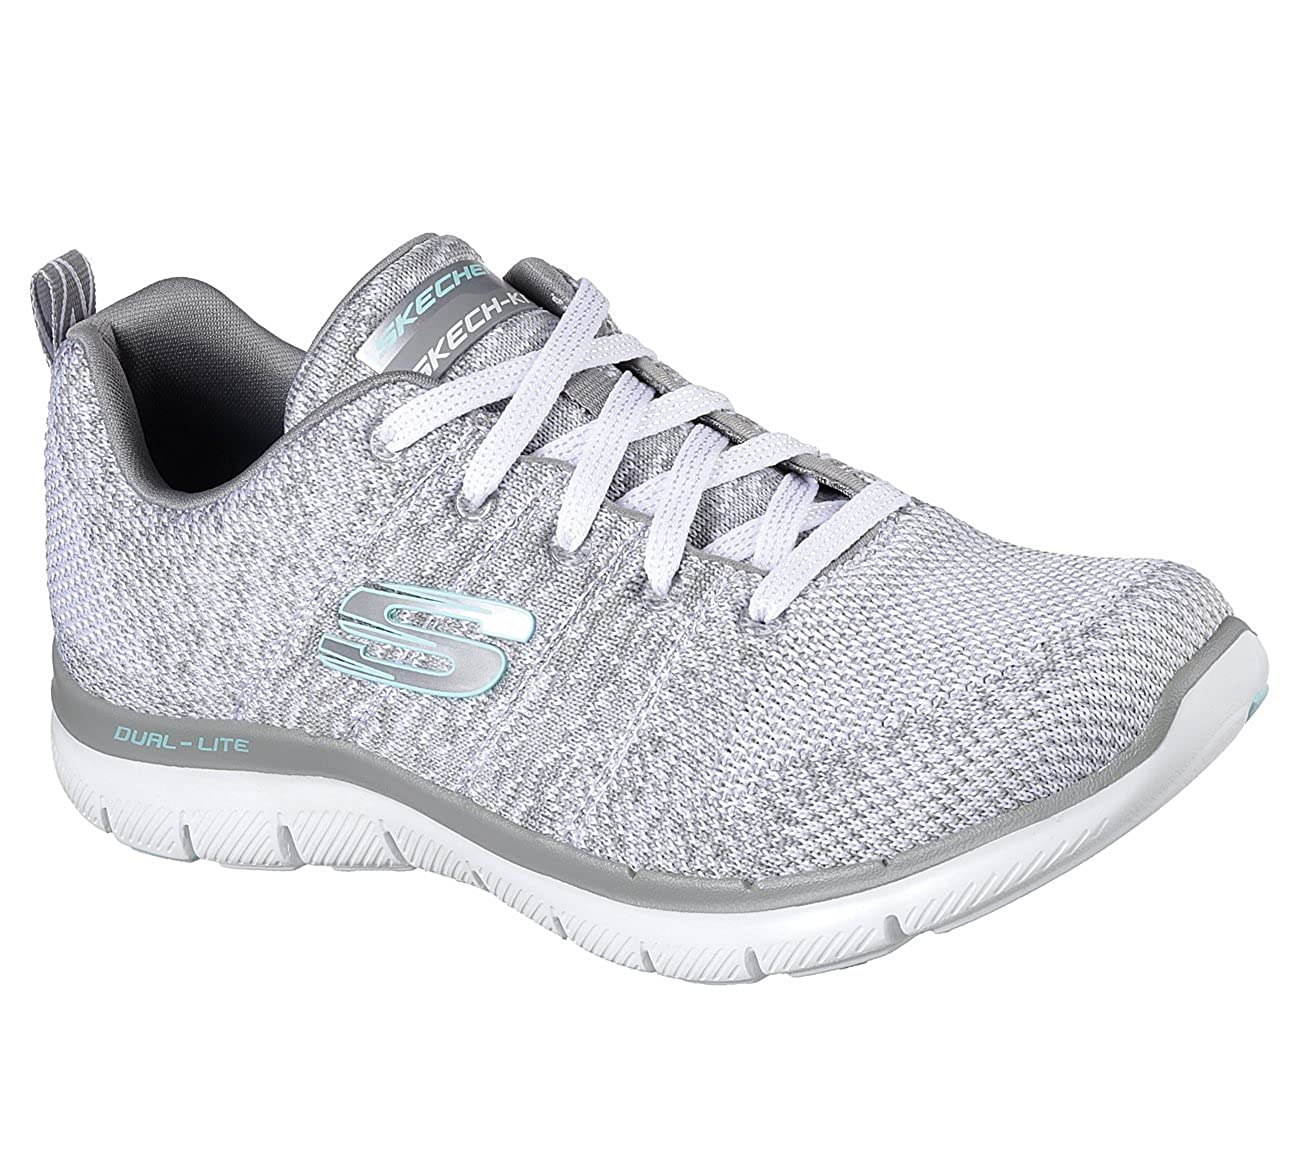 Blanc gris Skechers Flex Appeal 2.0 High Energy, paniers Basses Femme